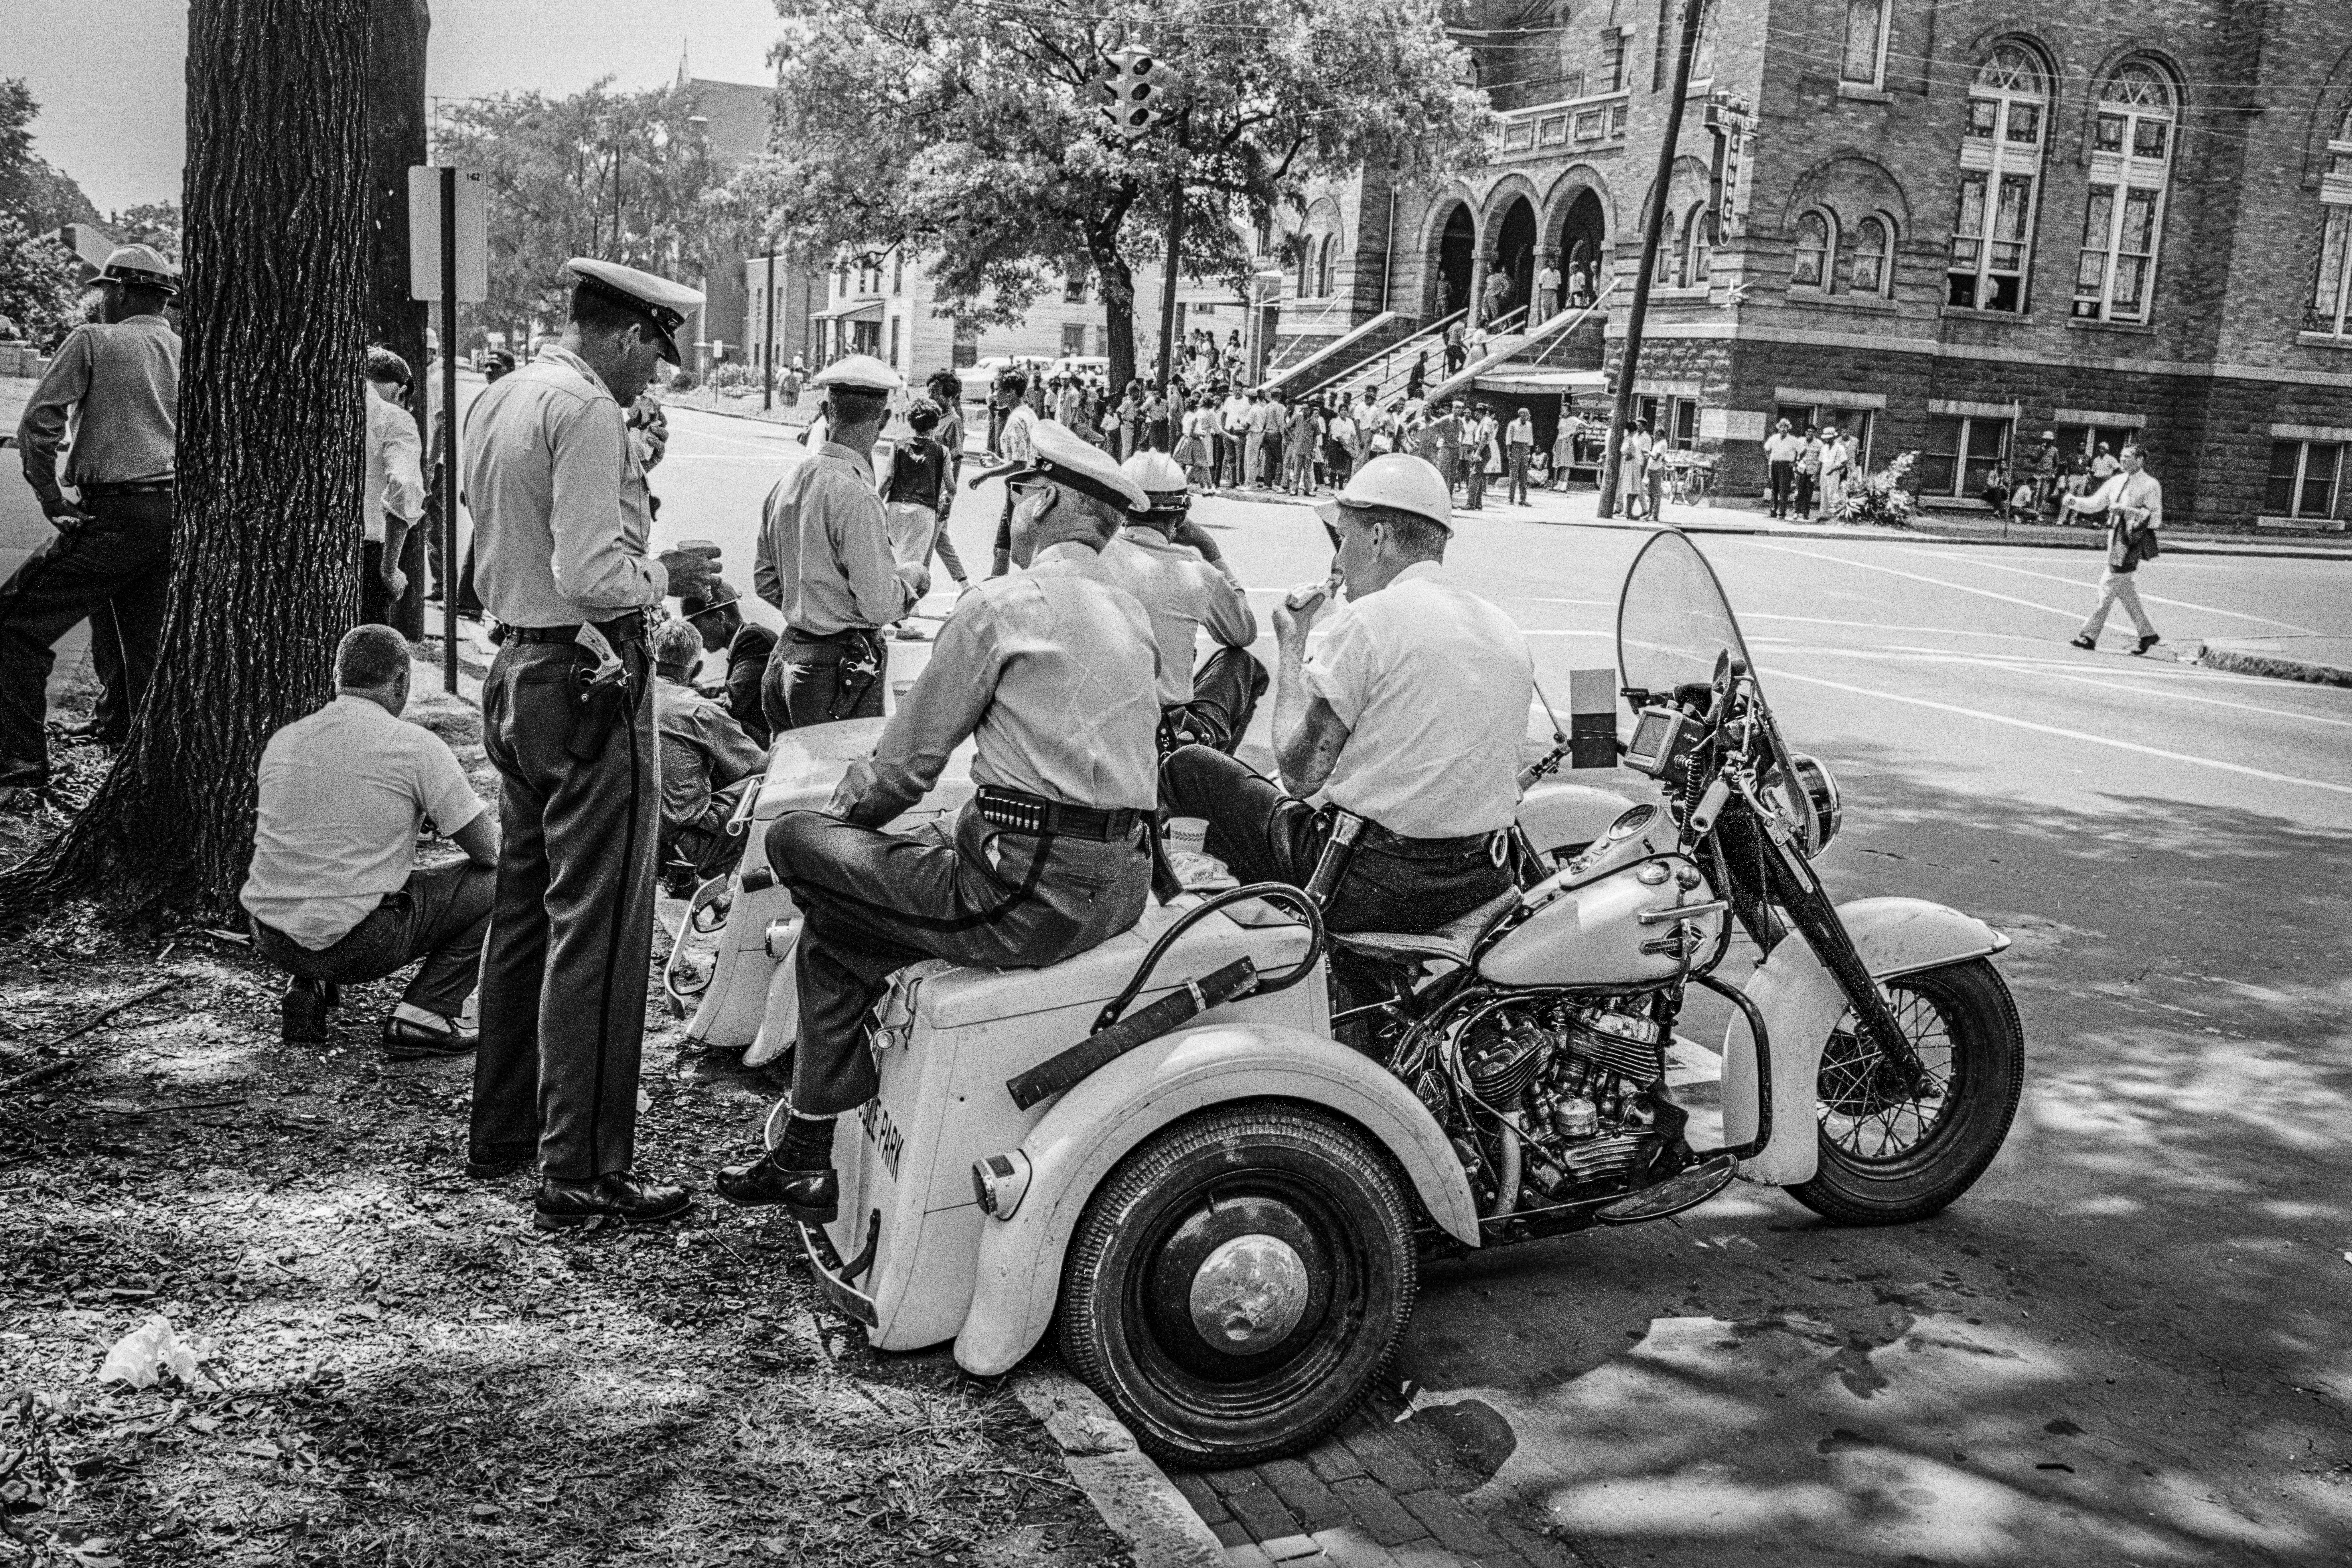 Unseen Photographs Of Civil Rights Conflict In Birmingham Alabama